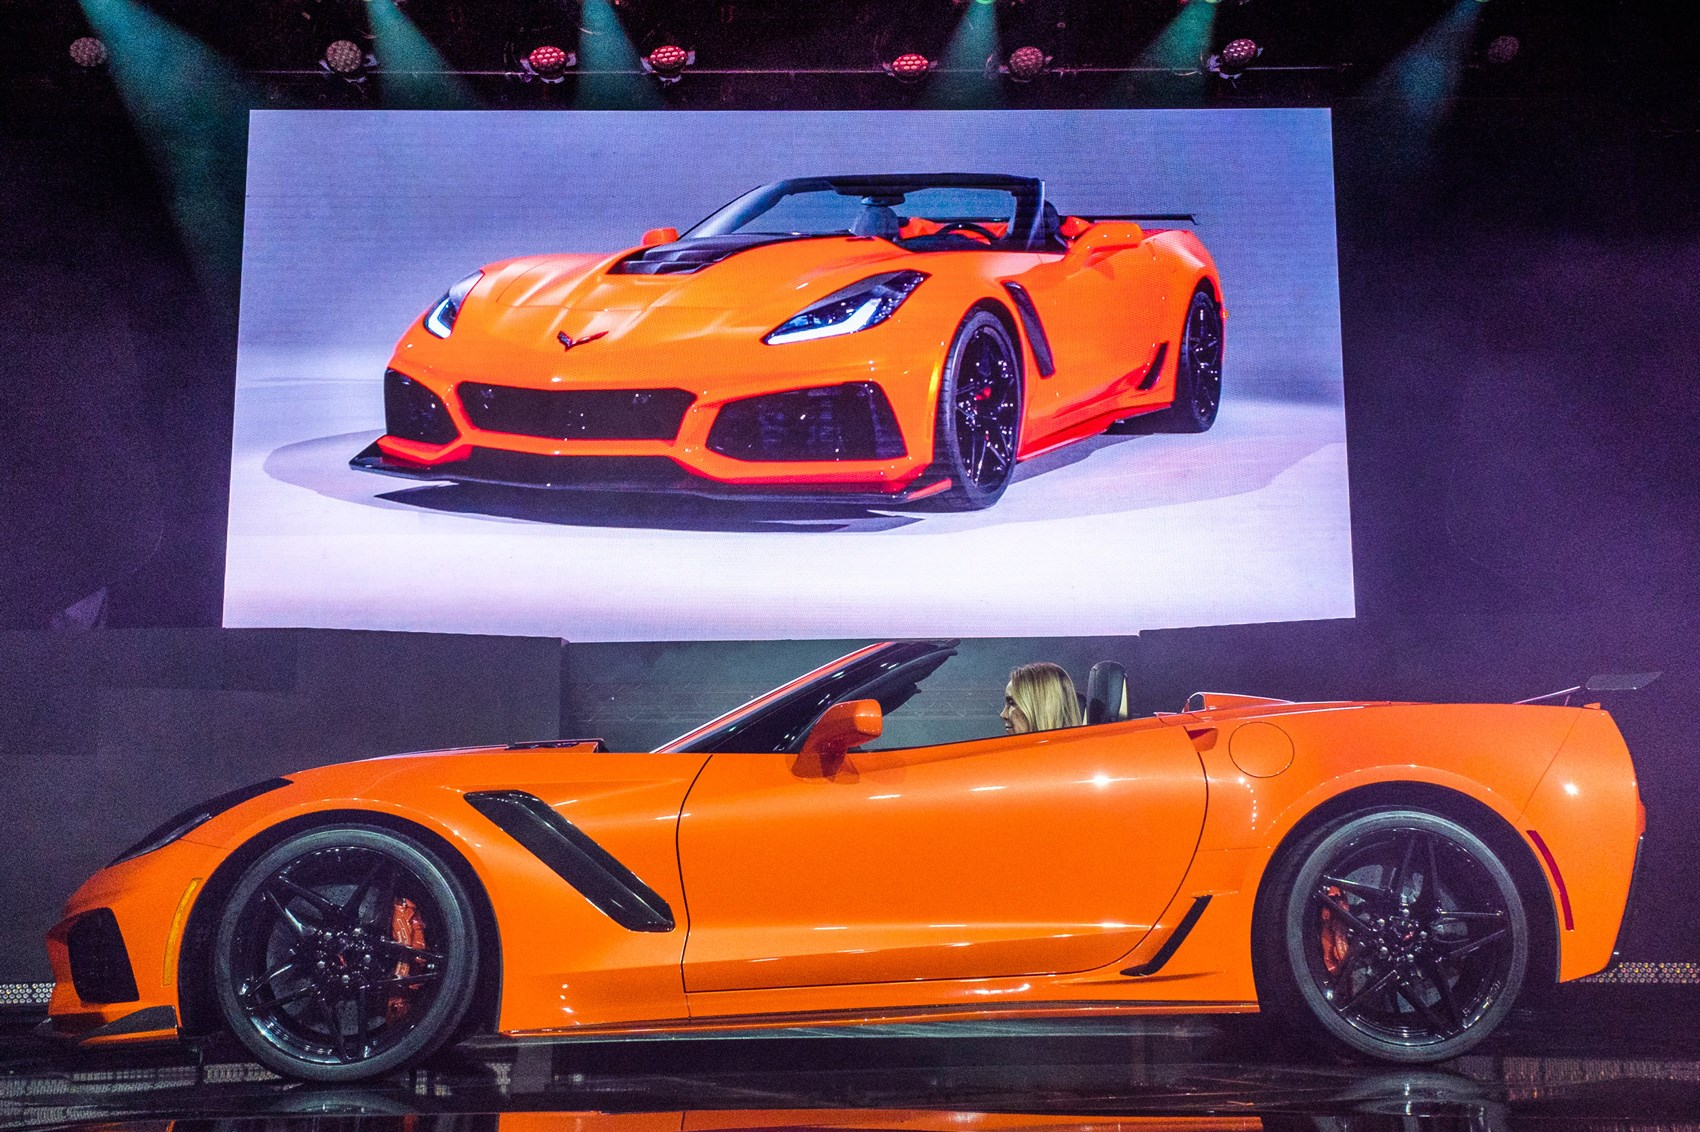 Extreme machine convertible Corvette ZR1 takes the stage